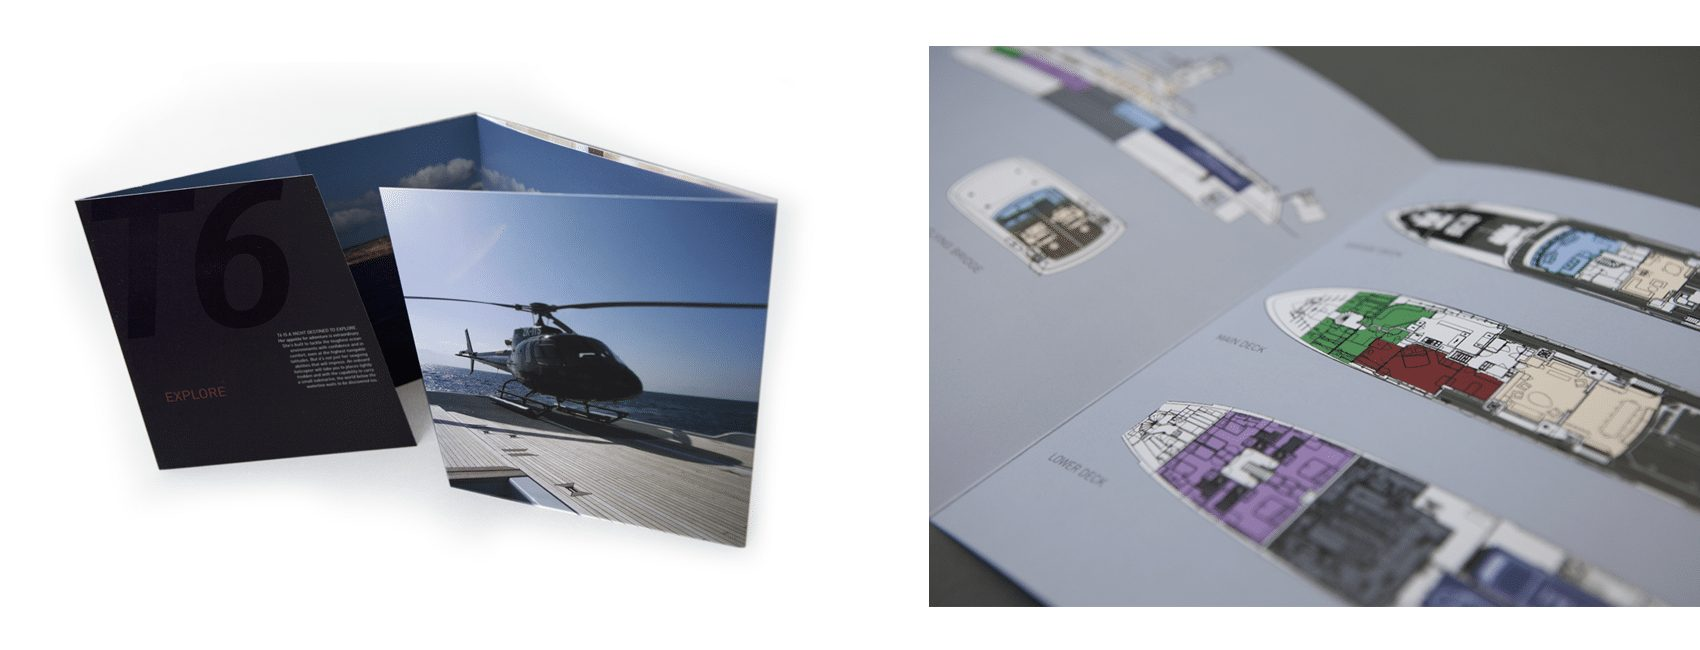 Take a look at our brochure design project for Burgess superyachts